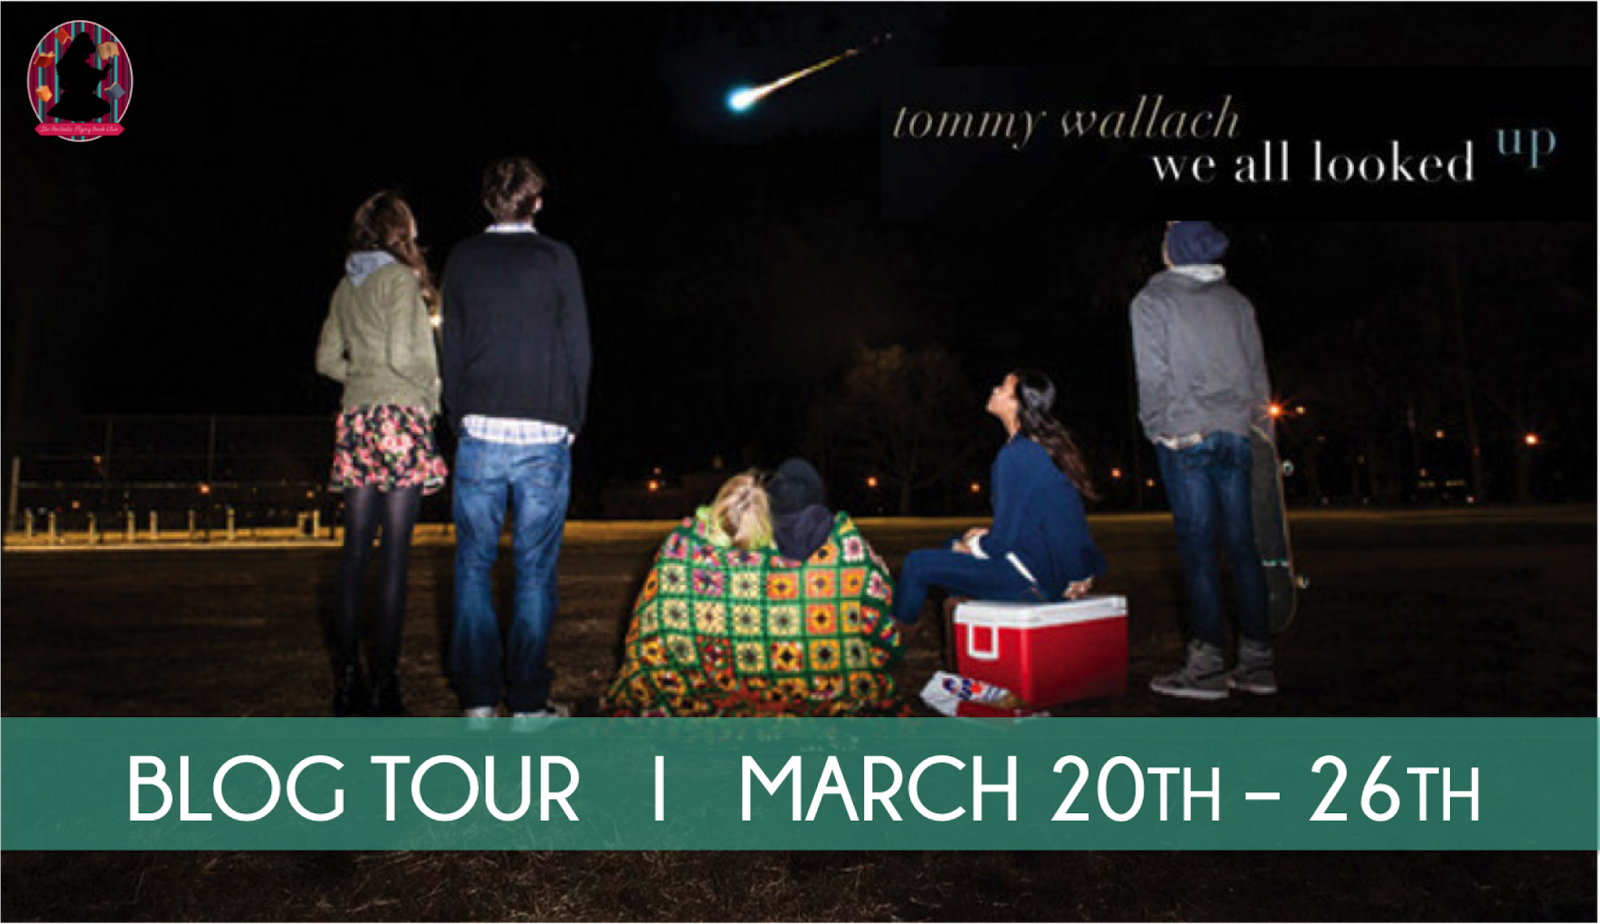 http://fantasticflyingbookclub.blogspot.com/2015/01/tour-schedule-we-all-looked-up-by-tommy.html